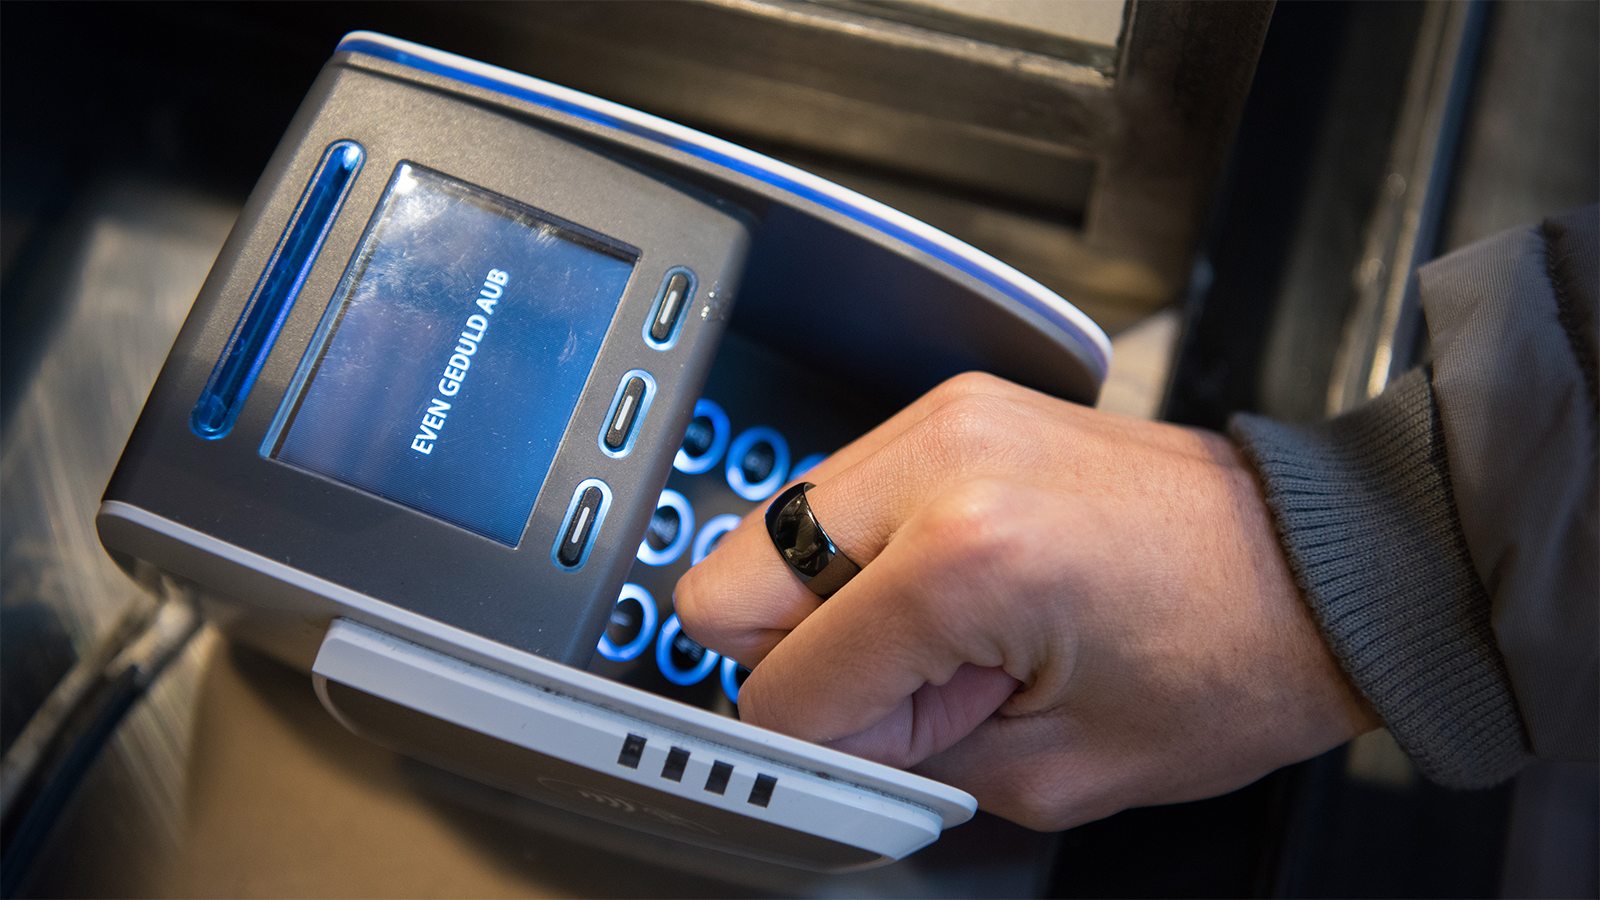 Mastercard contactless payment trial